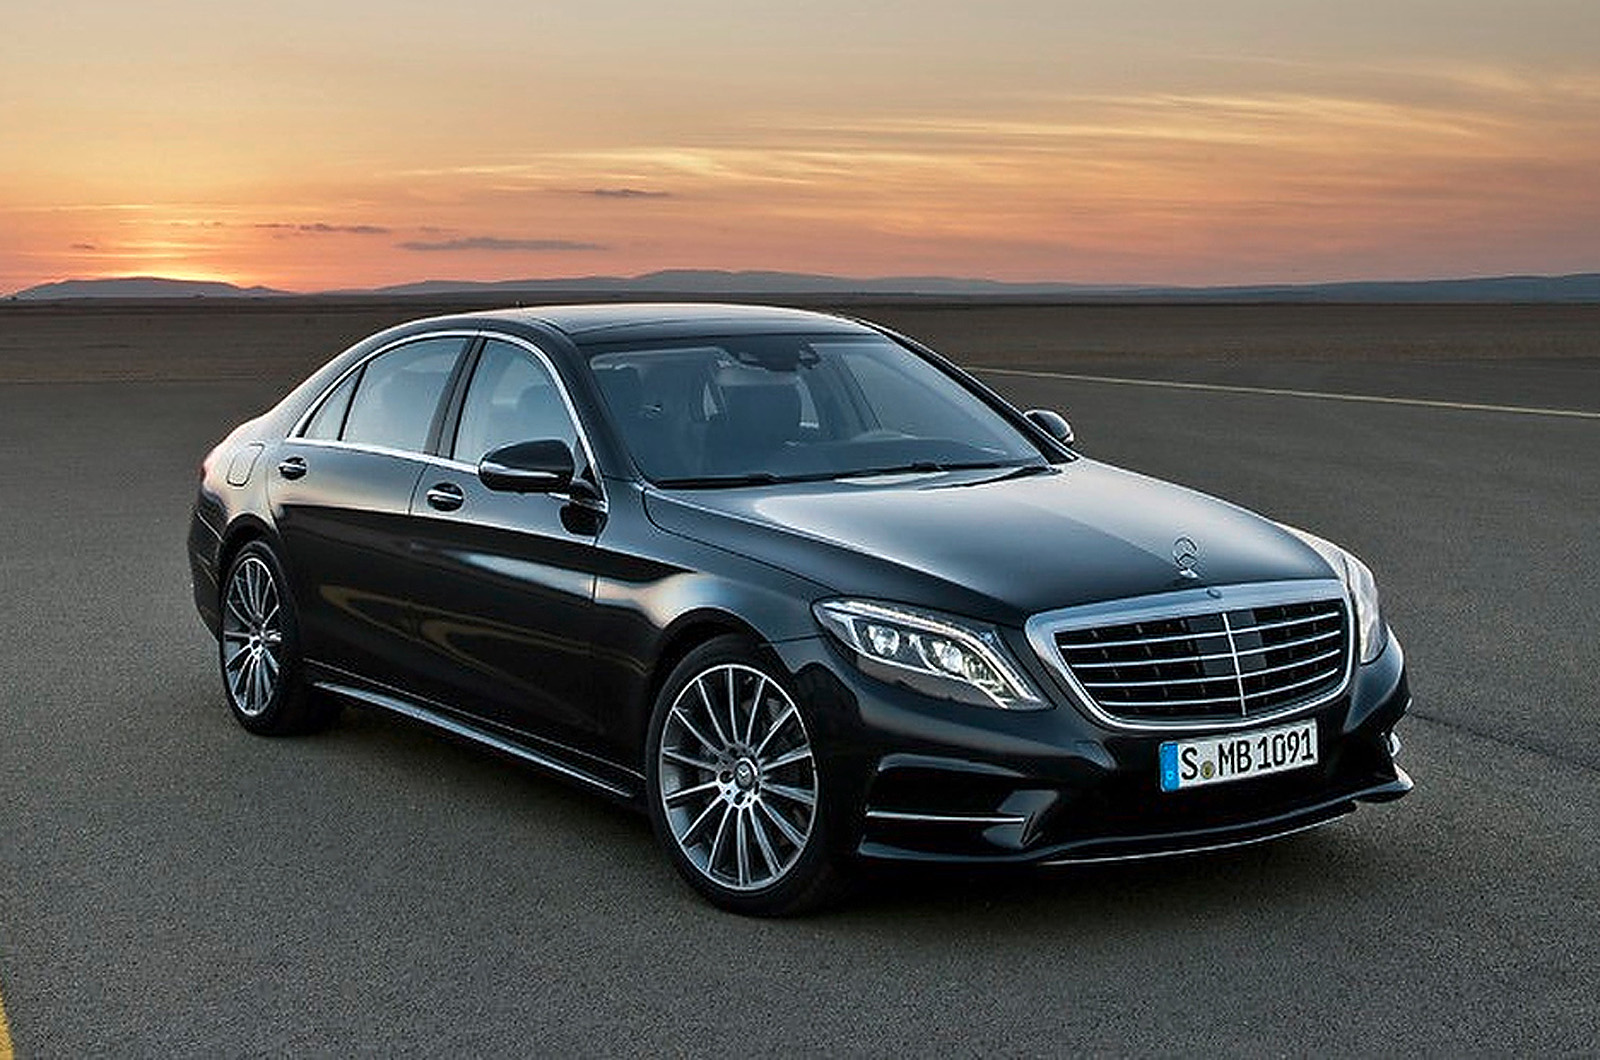 Uk Pricing For New Mercedes Benz S Class Revealed